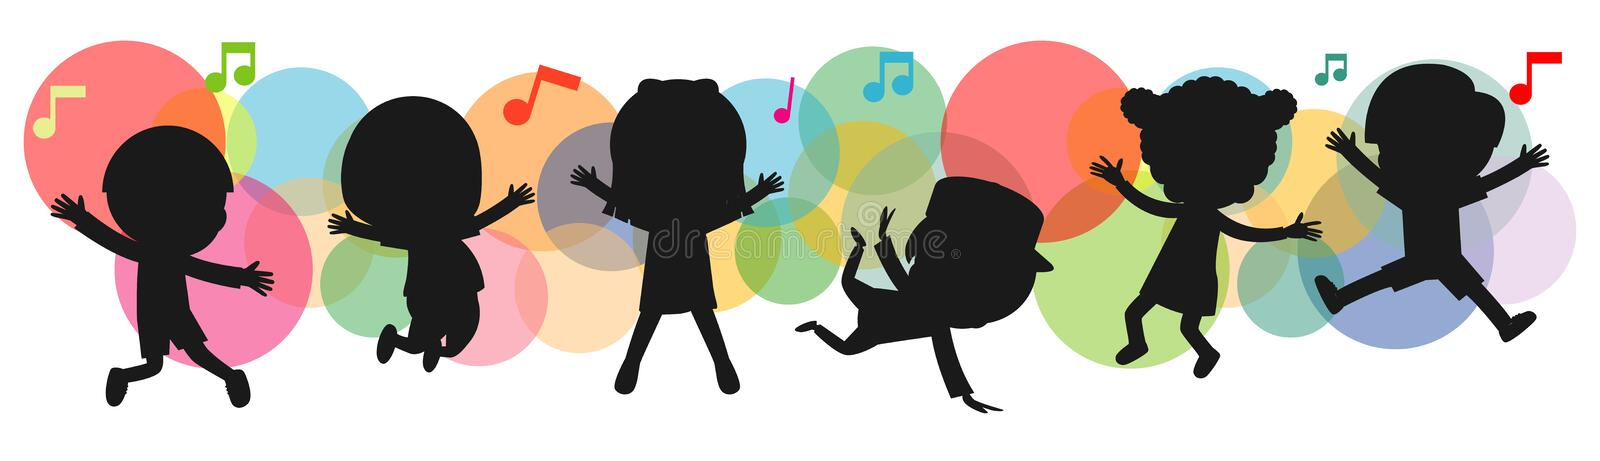 Kids silhouettes dancing, Child dancing break dance. children silhouettes jumping on background colorful isolated vector. Illustration stock illustration